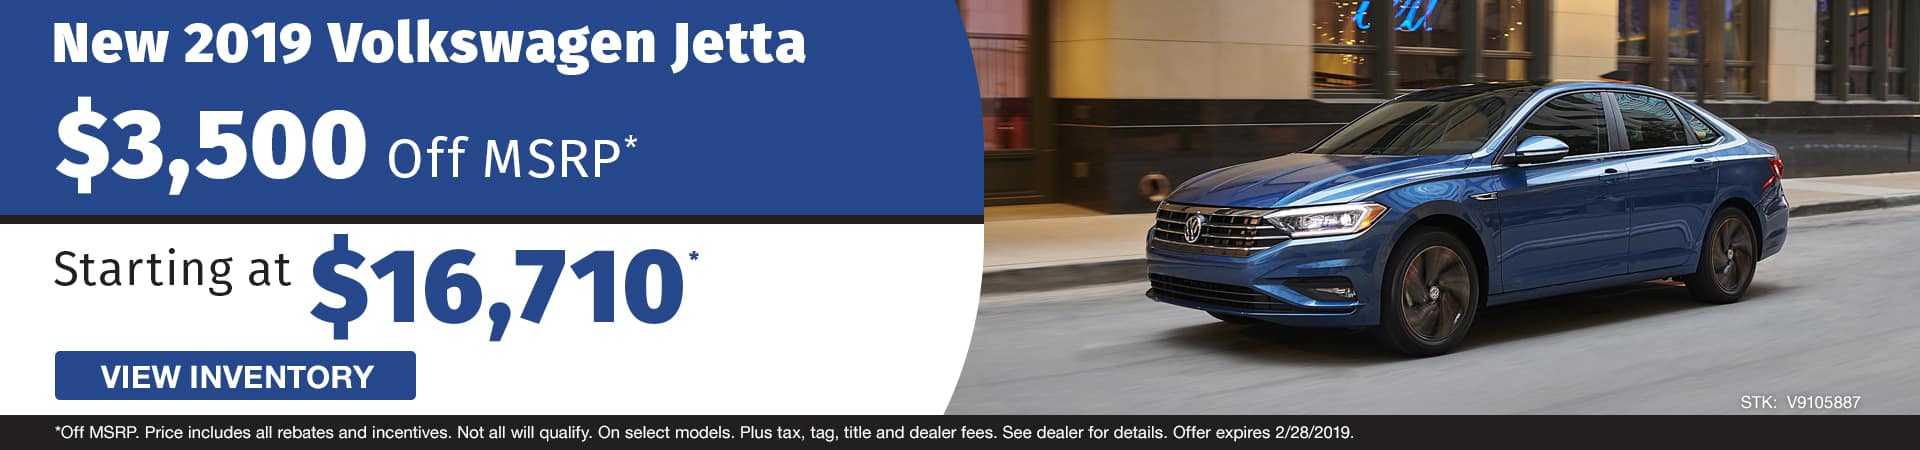 Save $3,500 off a new 2019 Volkswagen Jetta model in Murfreesboro TN